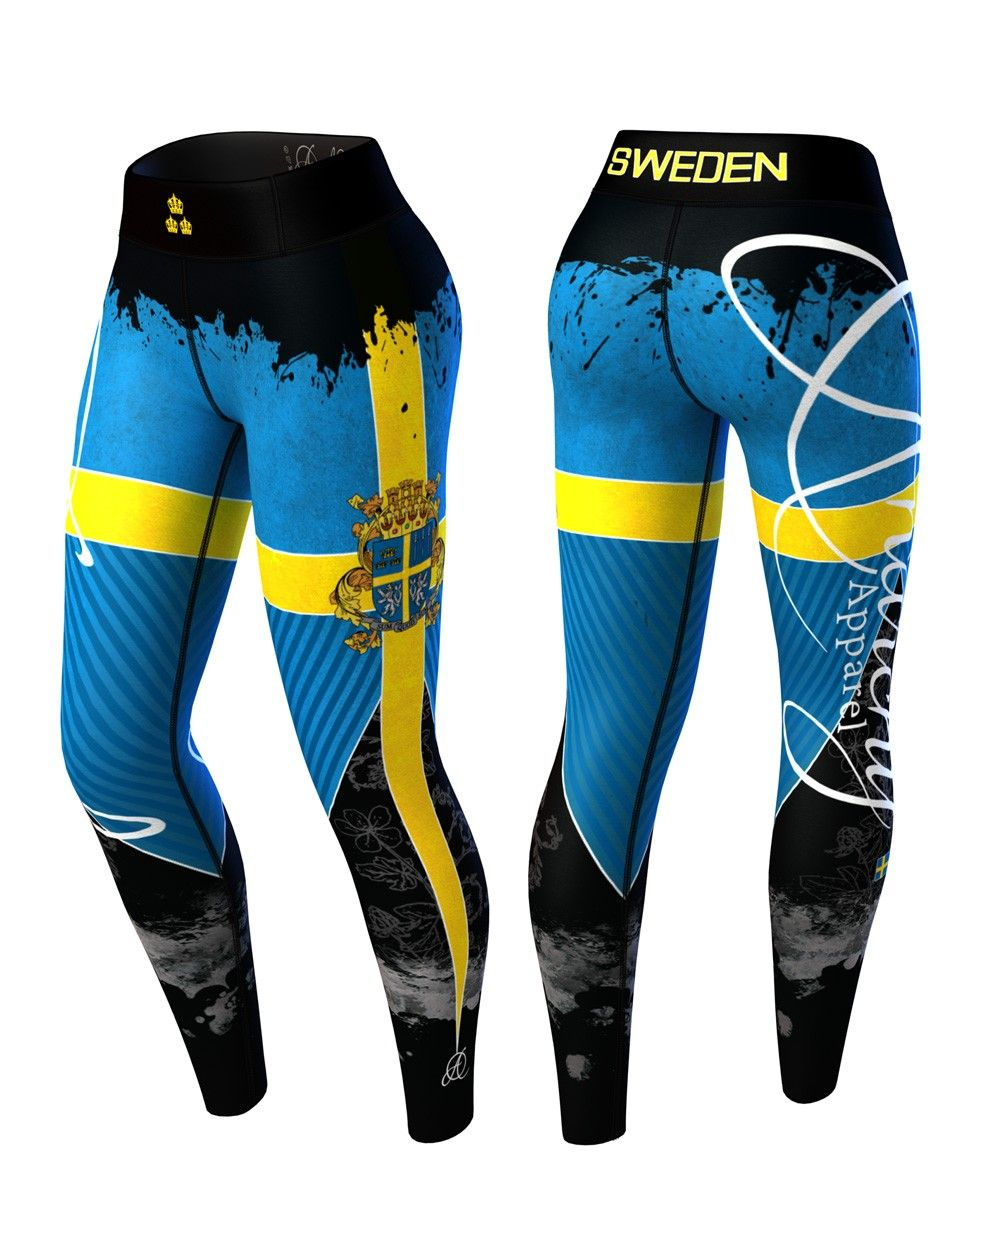 Anarchy Nation Pictures anarchy sweden nation legging 3.0 (blue/yellow)